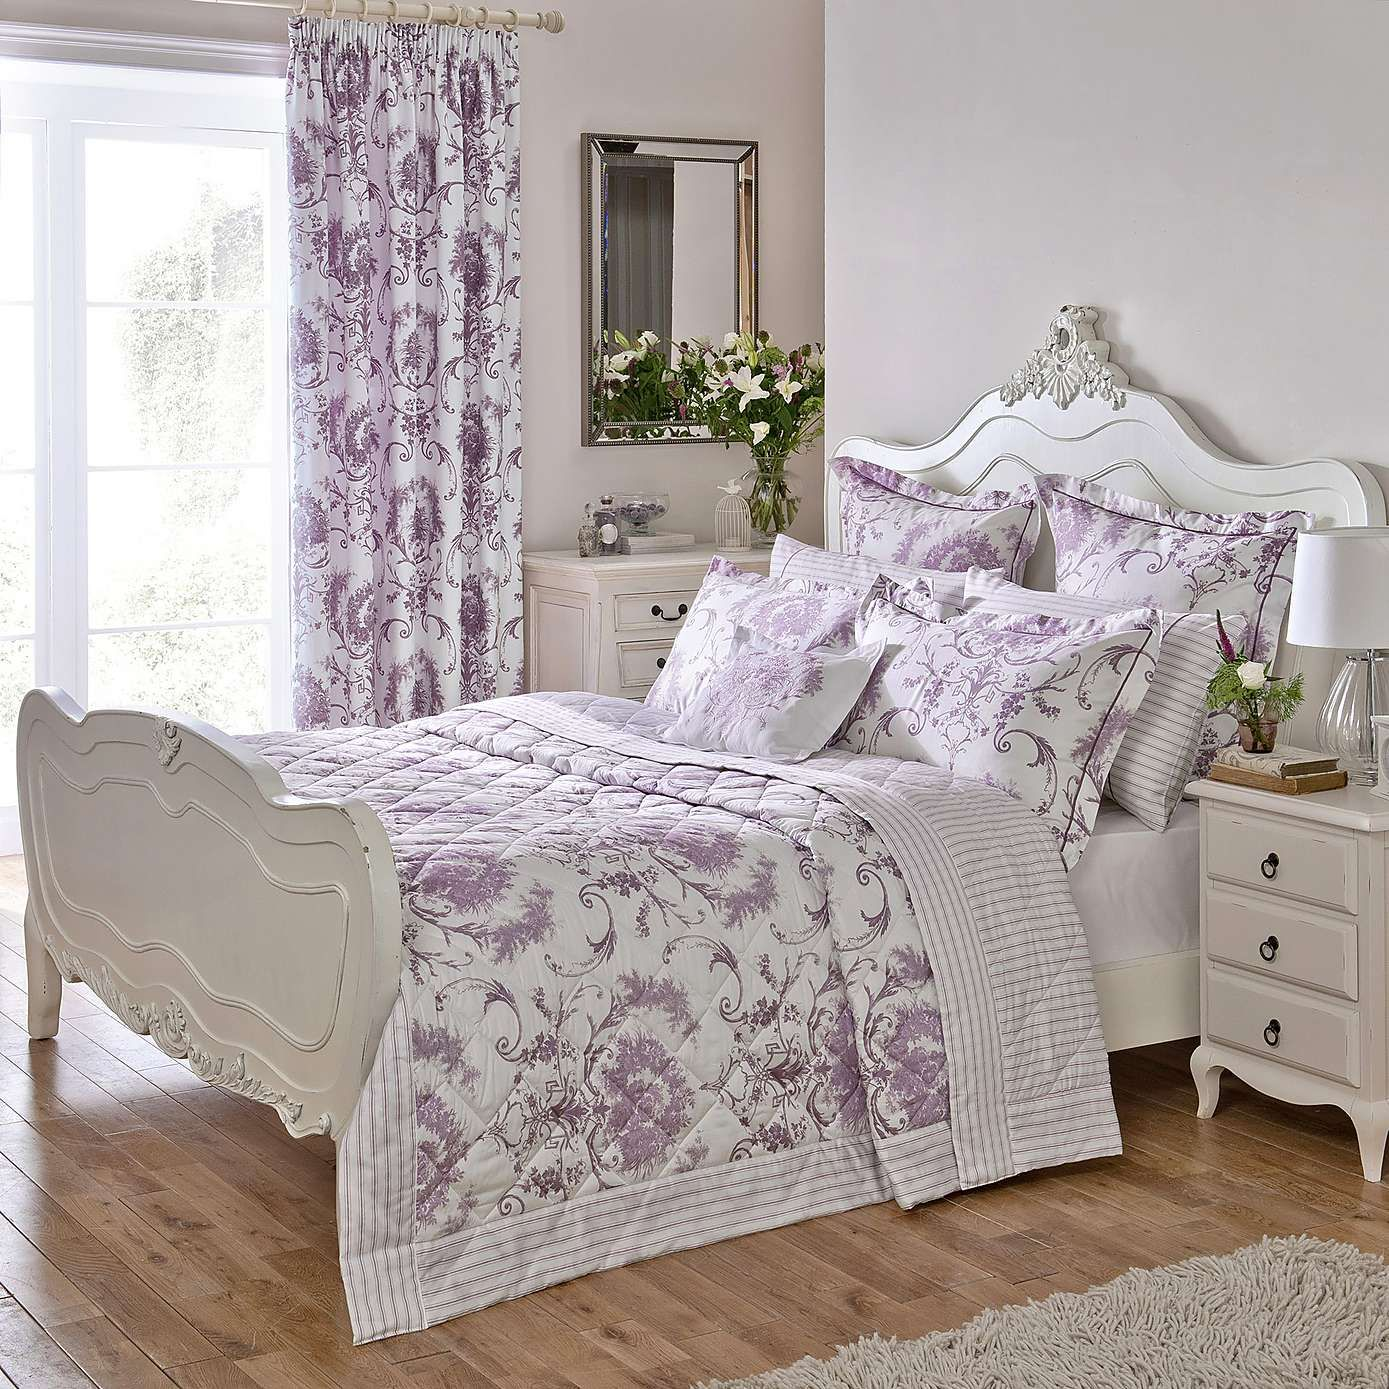 Lilac Bedroom Decor Dorma Heather Toile Bed Linen Collection Dunelm New Decorating